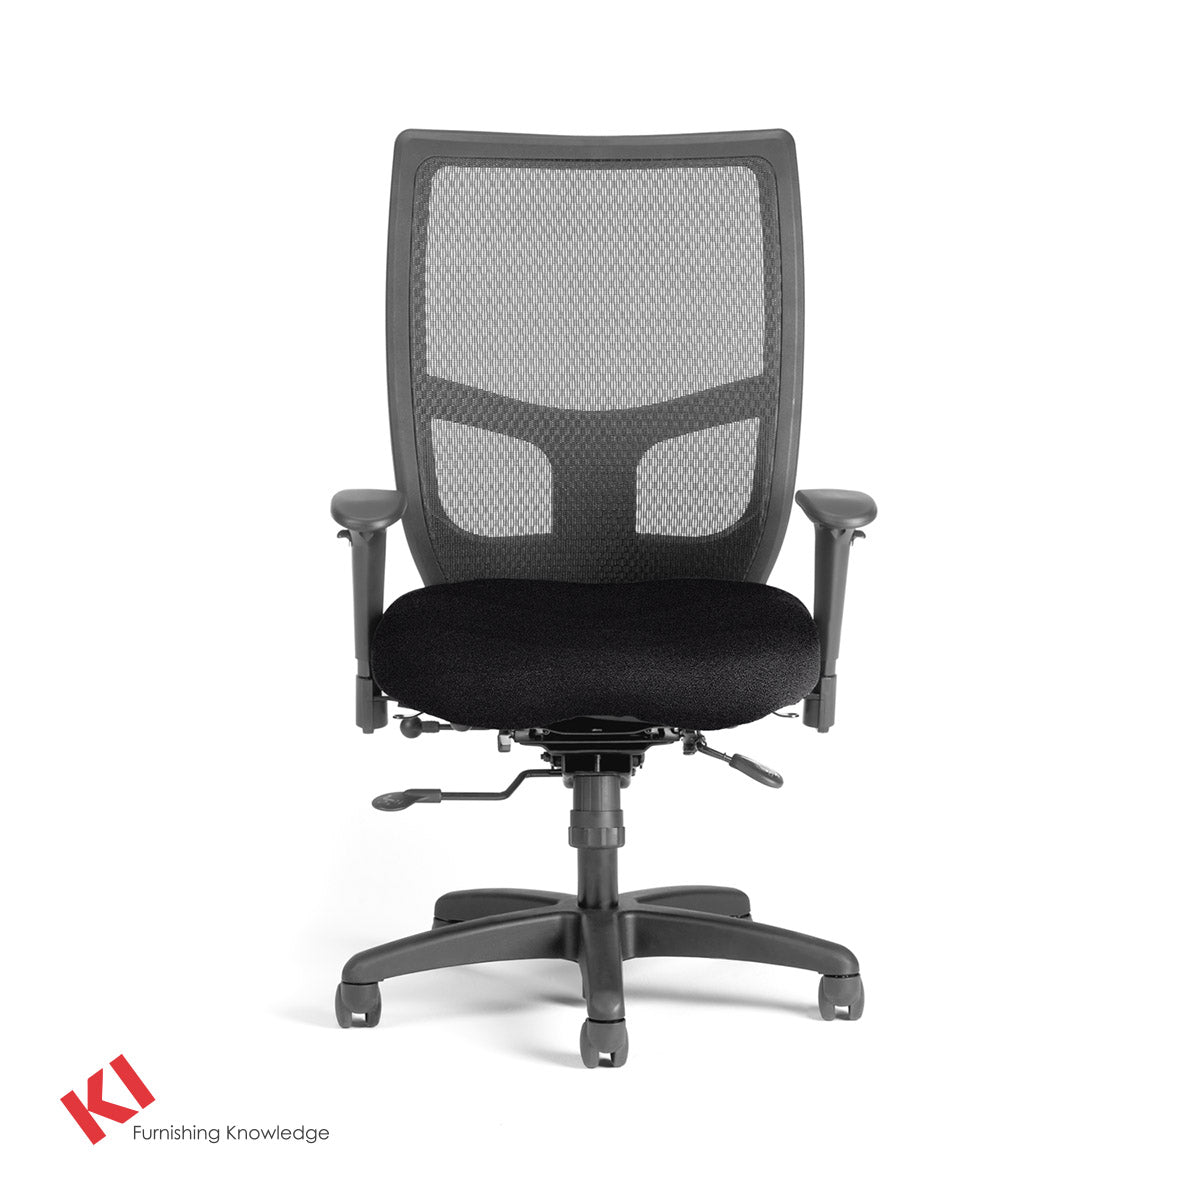 KI Impress Ultra Mid Back Task Chair Black